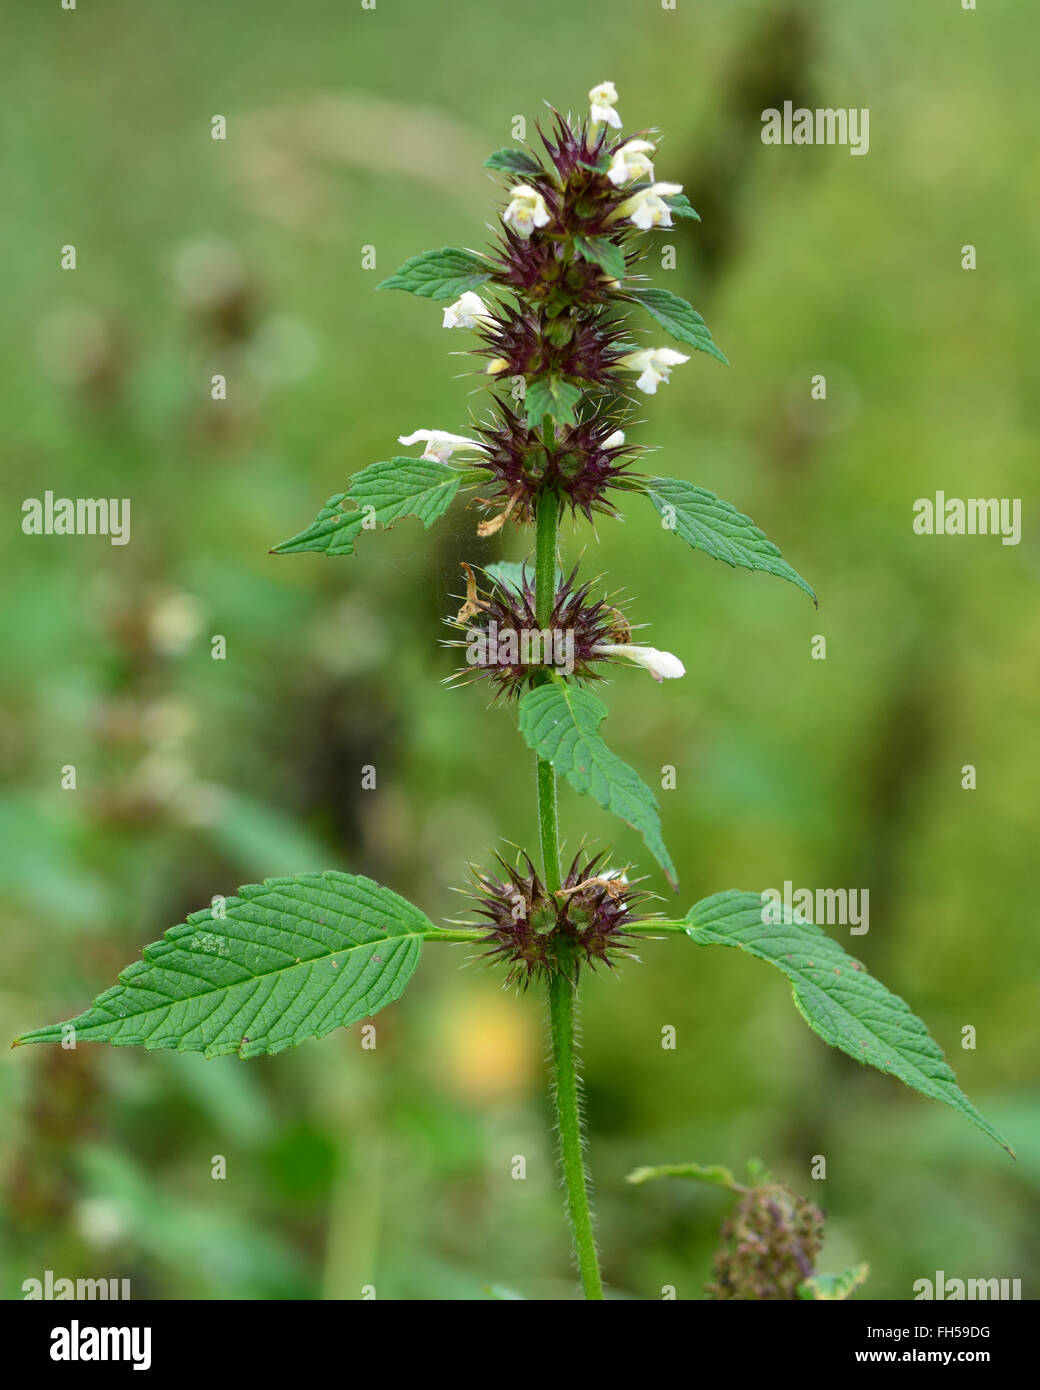 Common hemp-nettle (Galeopsis tetrahit). A herbaceous annual plant with white flowers, also known as brittlestem - Stock Image